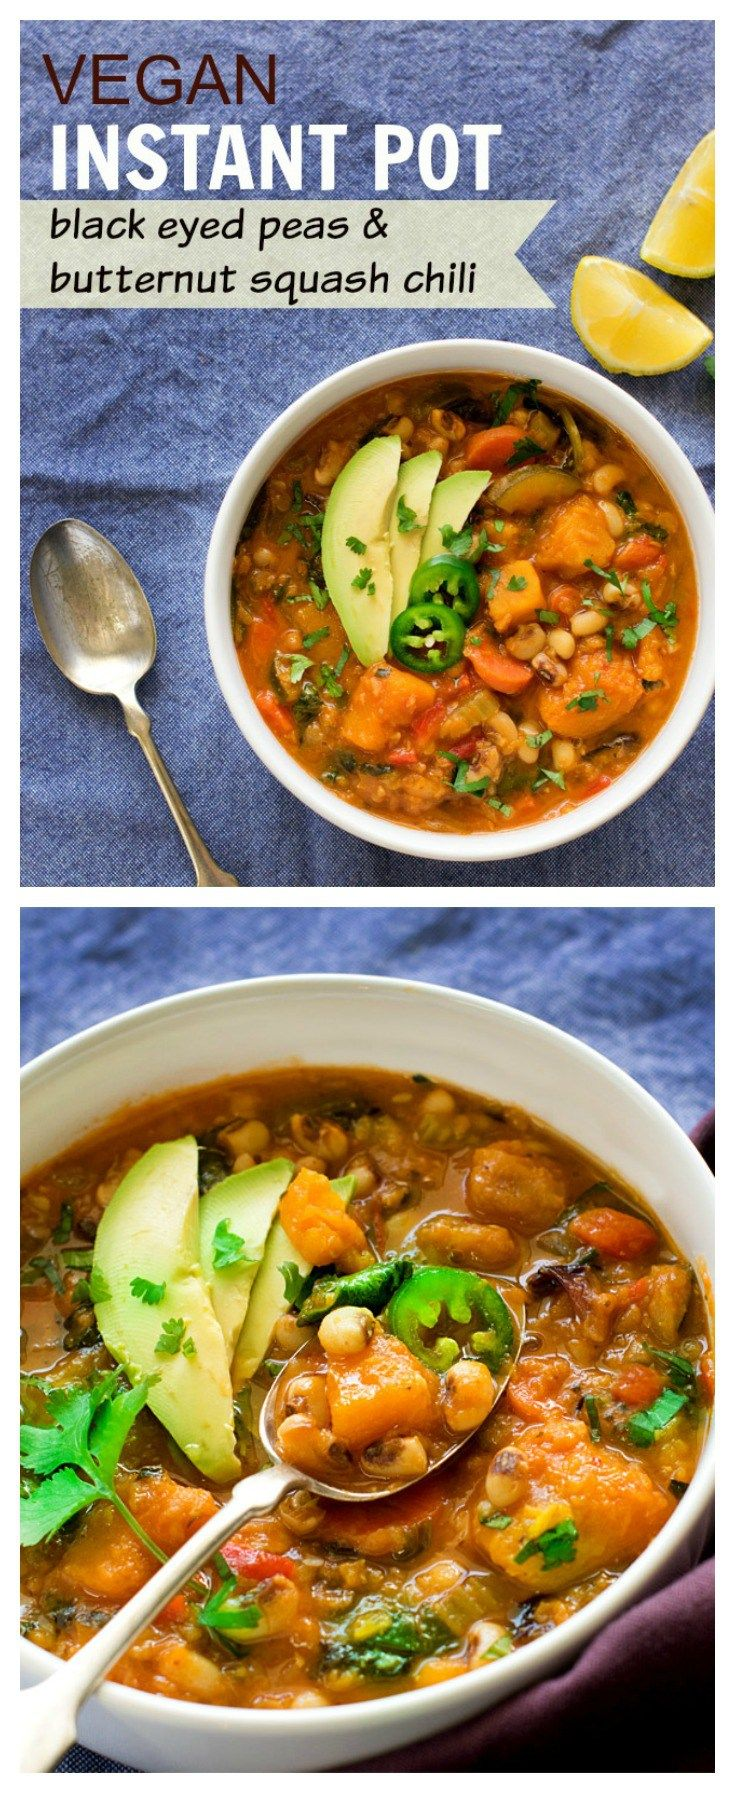 Instant Pot Black eyed peas lentils butternut squash chili is vegan & gluten- free. An easy one pot meal made by pressure cooking in instant pot. Vegetarian